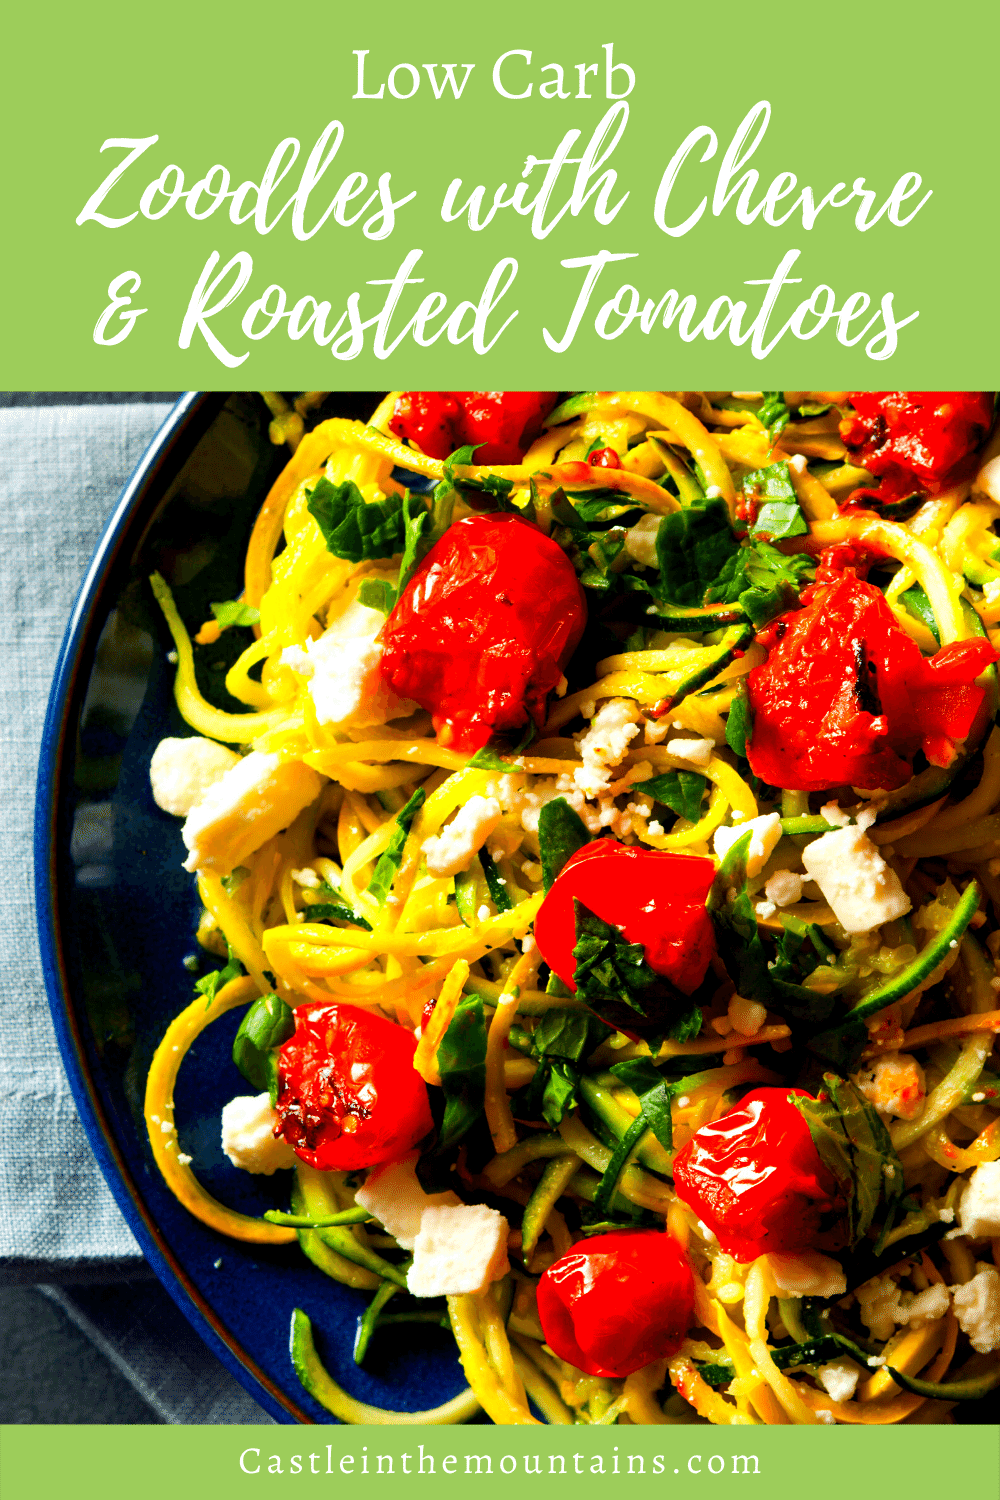 Zucchini Chevre with Roasted Tomatoes - Make the Ultimate Zoodle Dish!